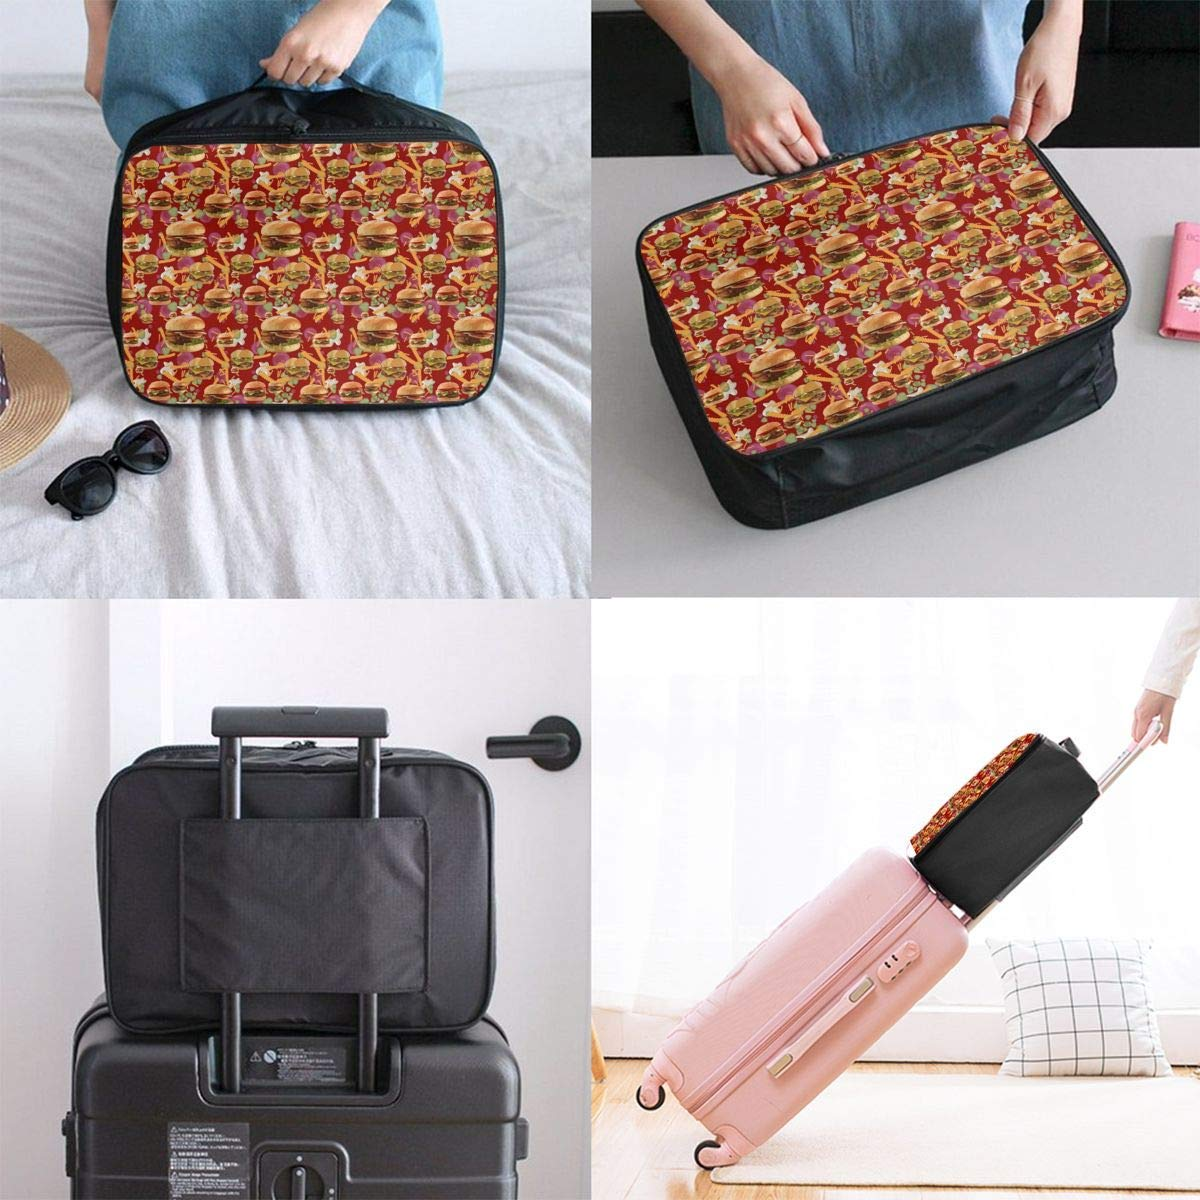 JTRVW Luggage Bags for Travel Travel Lightweight Waterproof Foldable Storage Carry Luggage Duffle Tote Bag Red Hamburgers French Fries